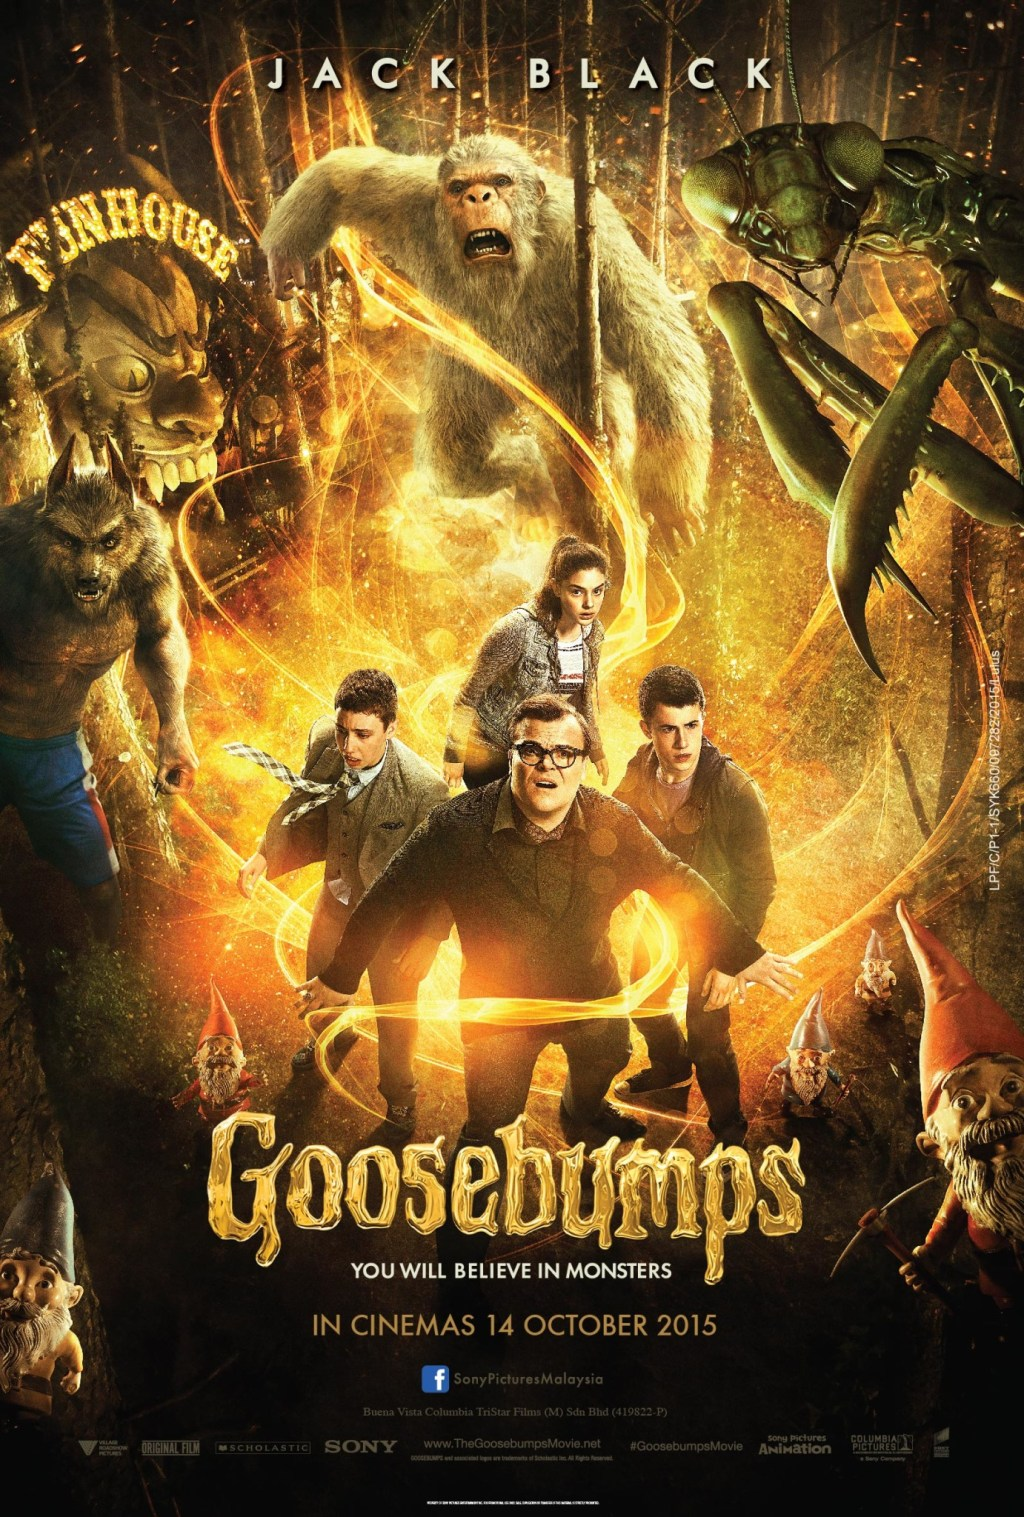 ad8ca31e5511 Movie Review and Interview with the Cast of Goosebumps